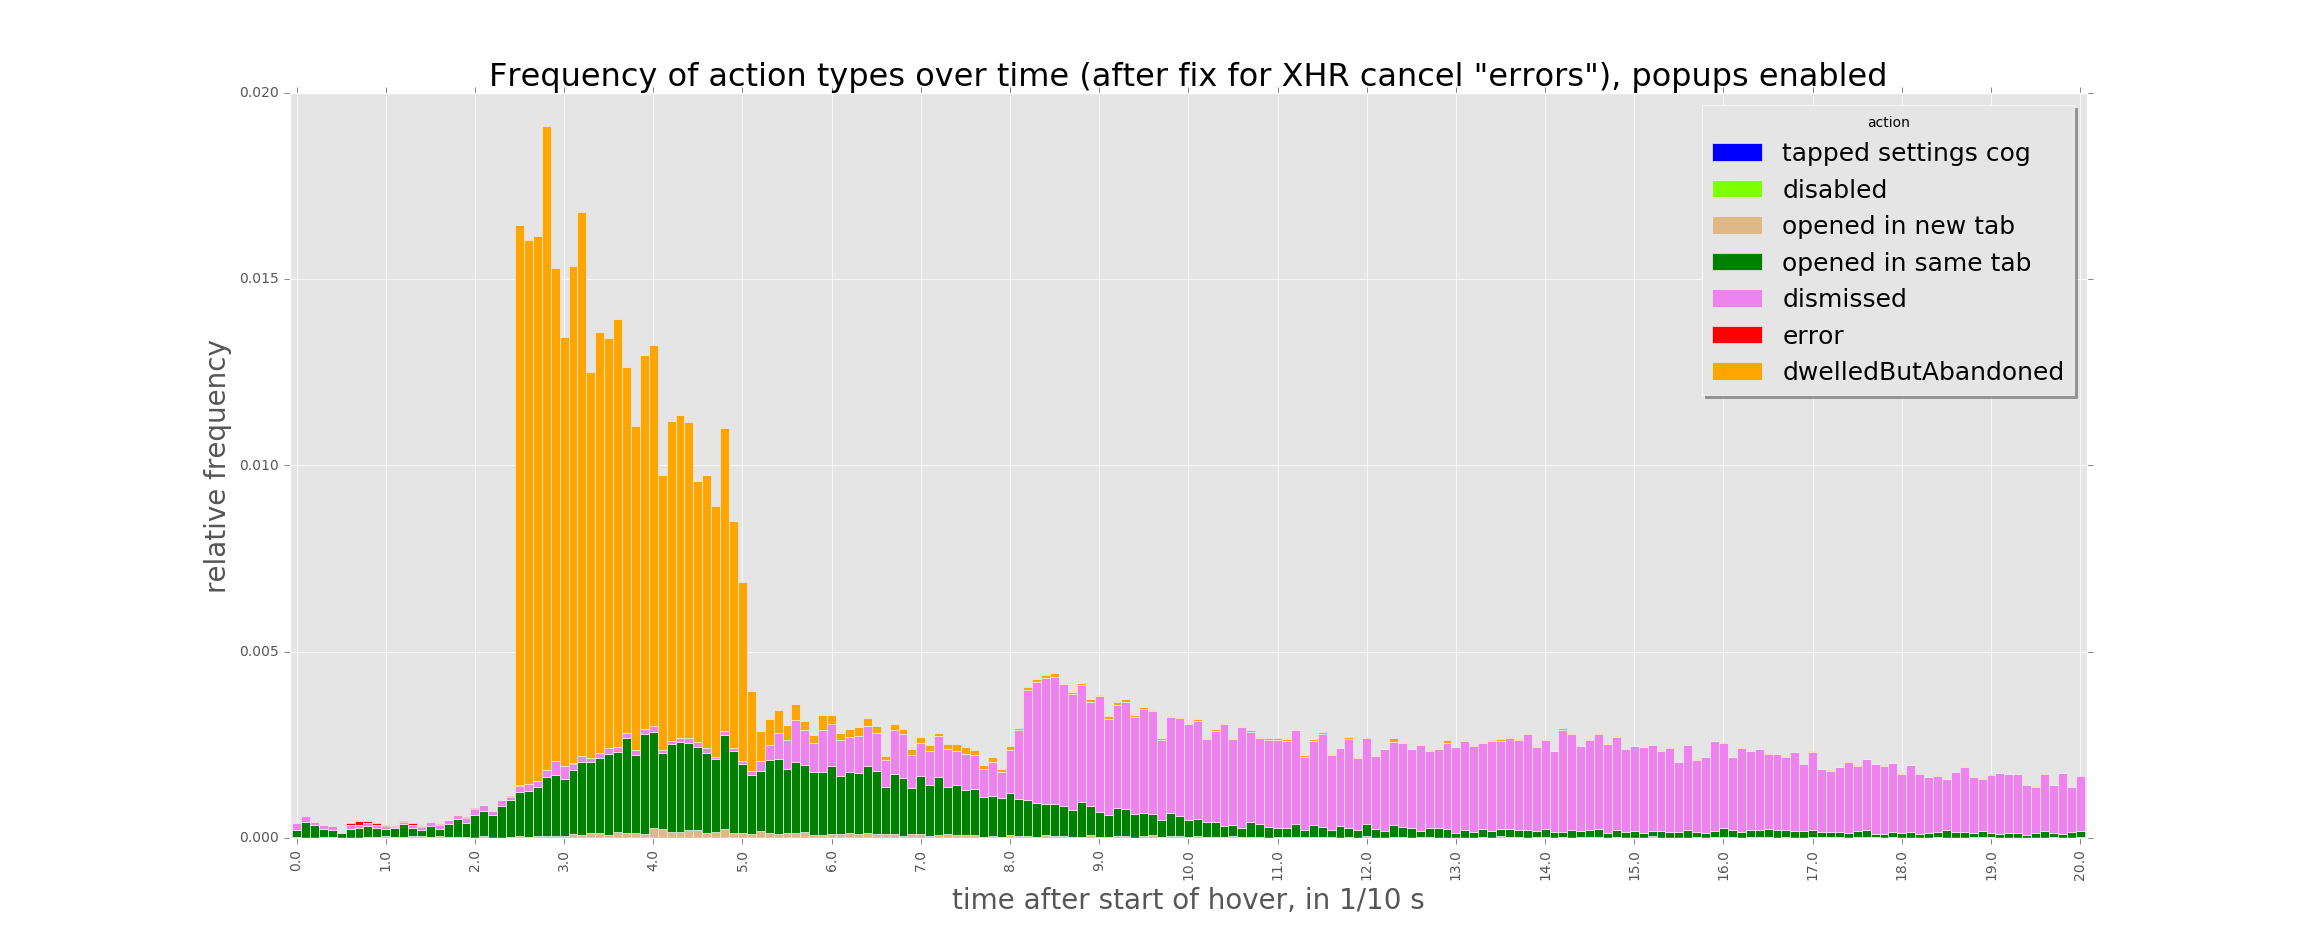 Frequency of action types over time (after fix for XHR cancel _errors_), popups enabled.png (931×2 px, 96 KB)